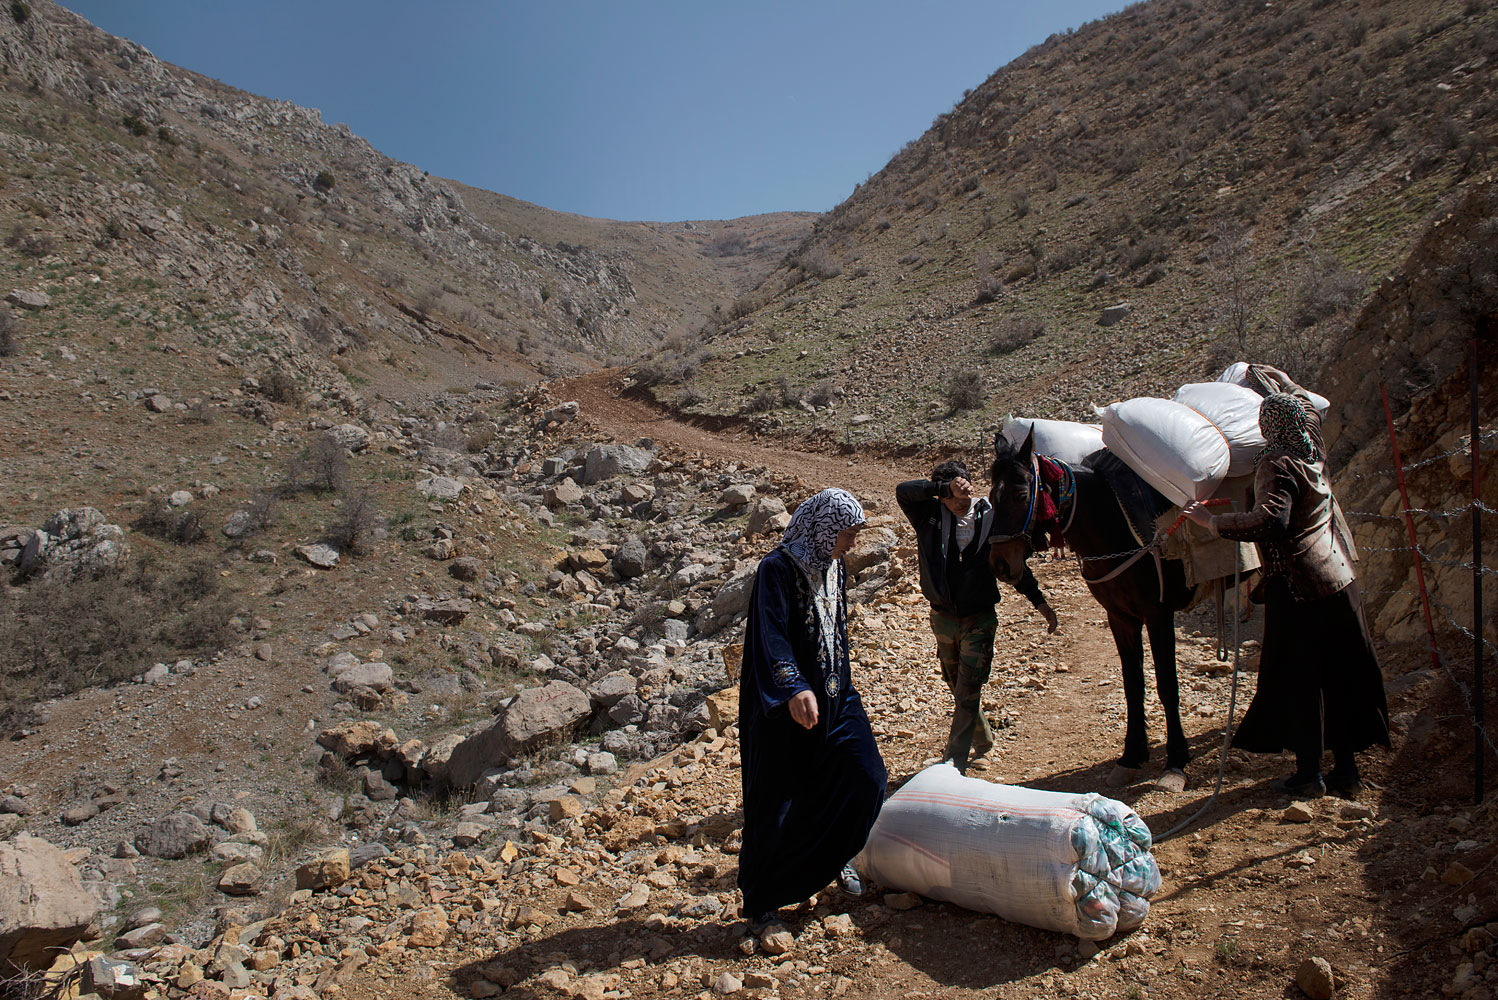 Syrian refugees from the Syrian village of Beit Jinn return from the Lebanese border town of Shabaa back across the mountains of Jabal al Sheikh into Syria. The wife and daughter-in-law of Mohammed Kablan, 56, (not shown) were tired of living as a family of refugees, and found Lebanon too expensive compared to Syria.